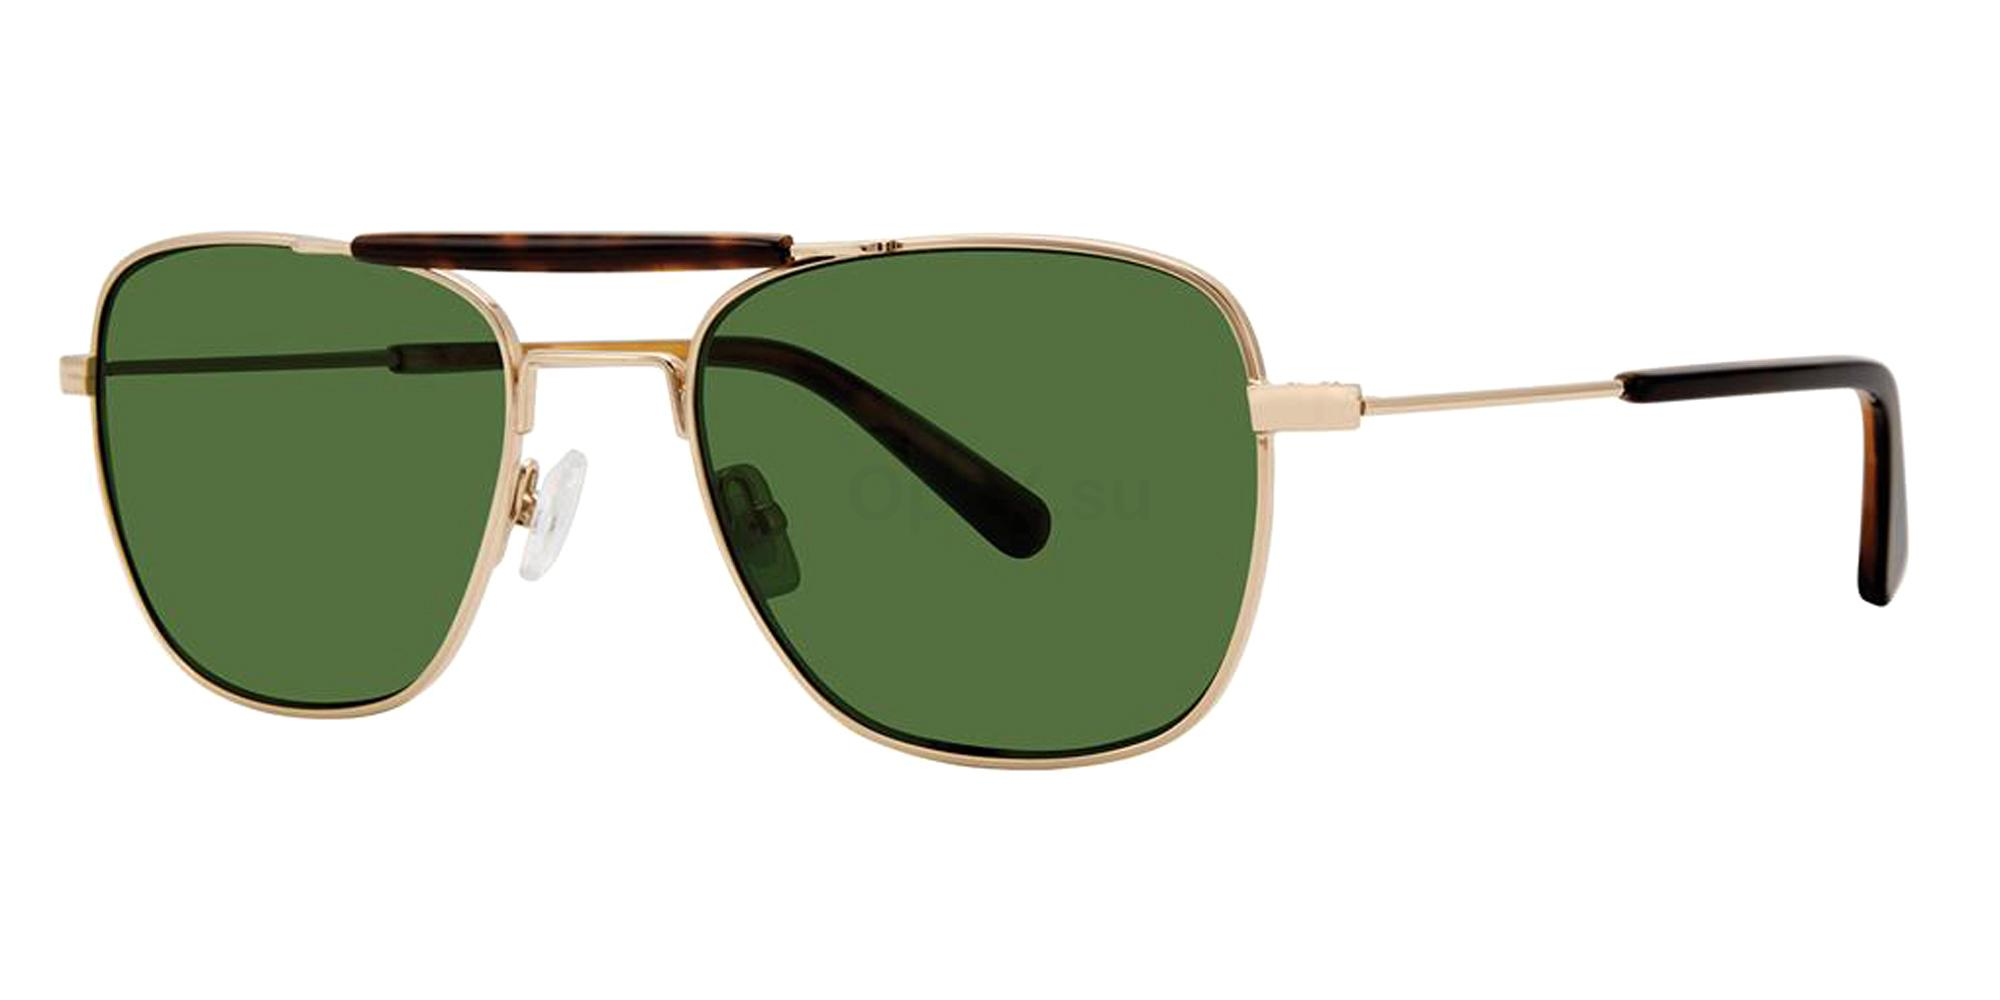 Gold BROCK Sunglasses, Zac Posen